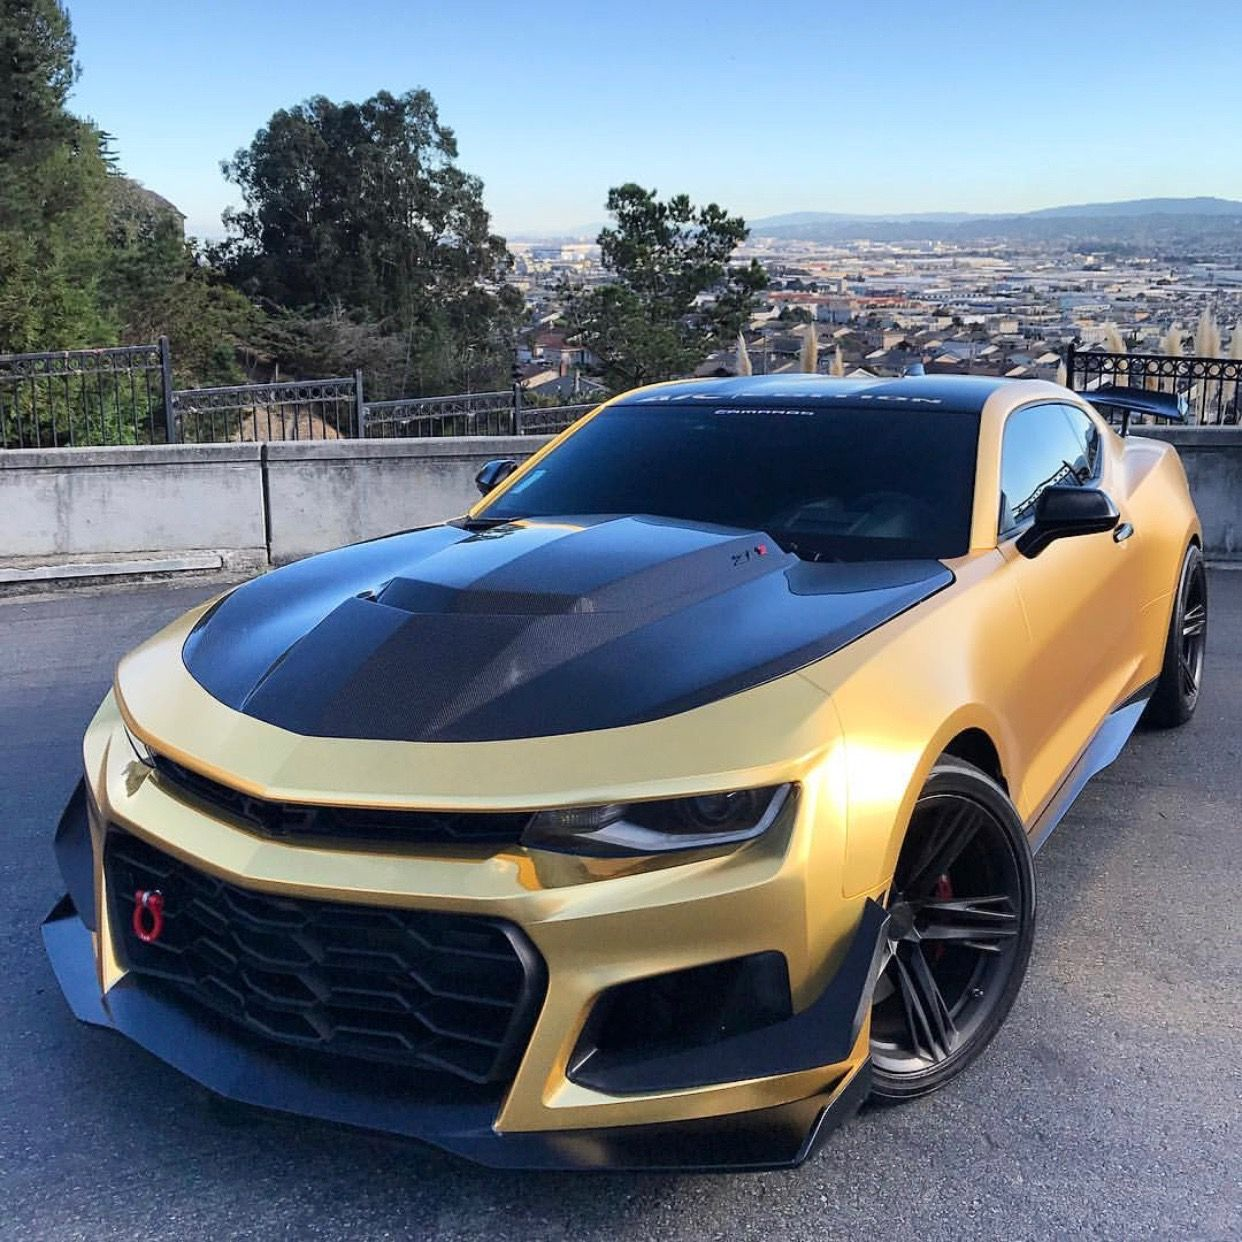 Chevrolet Camaro Zl1 1le Painted In Summit White And